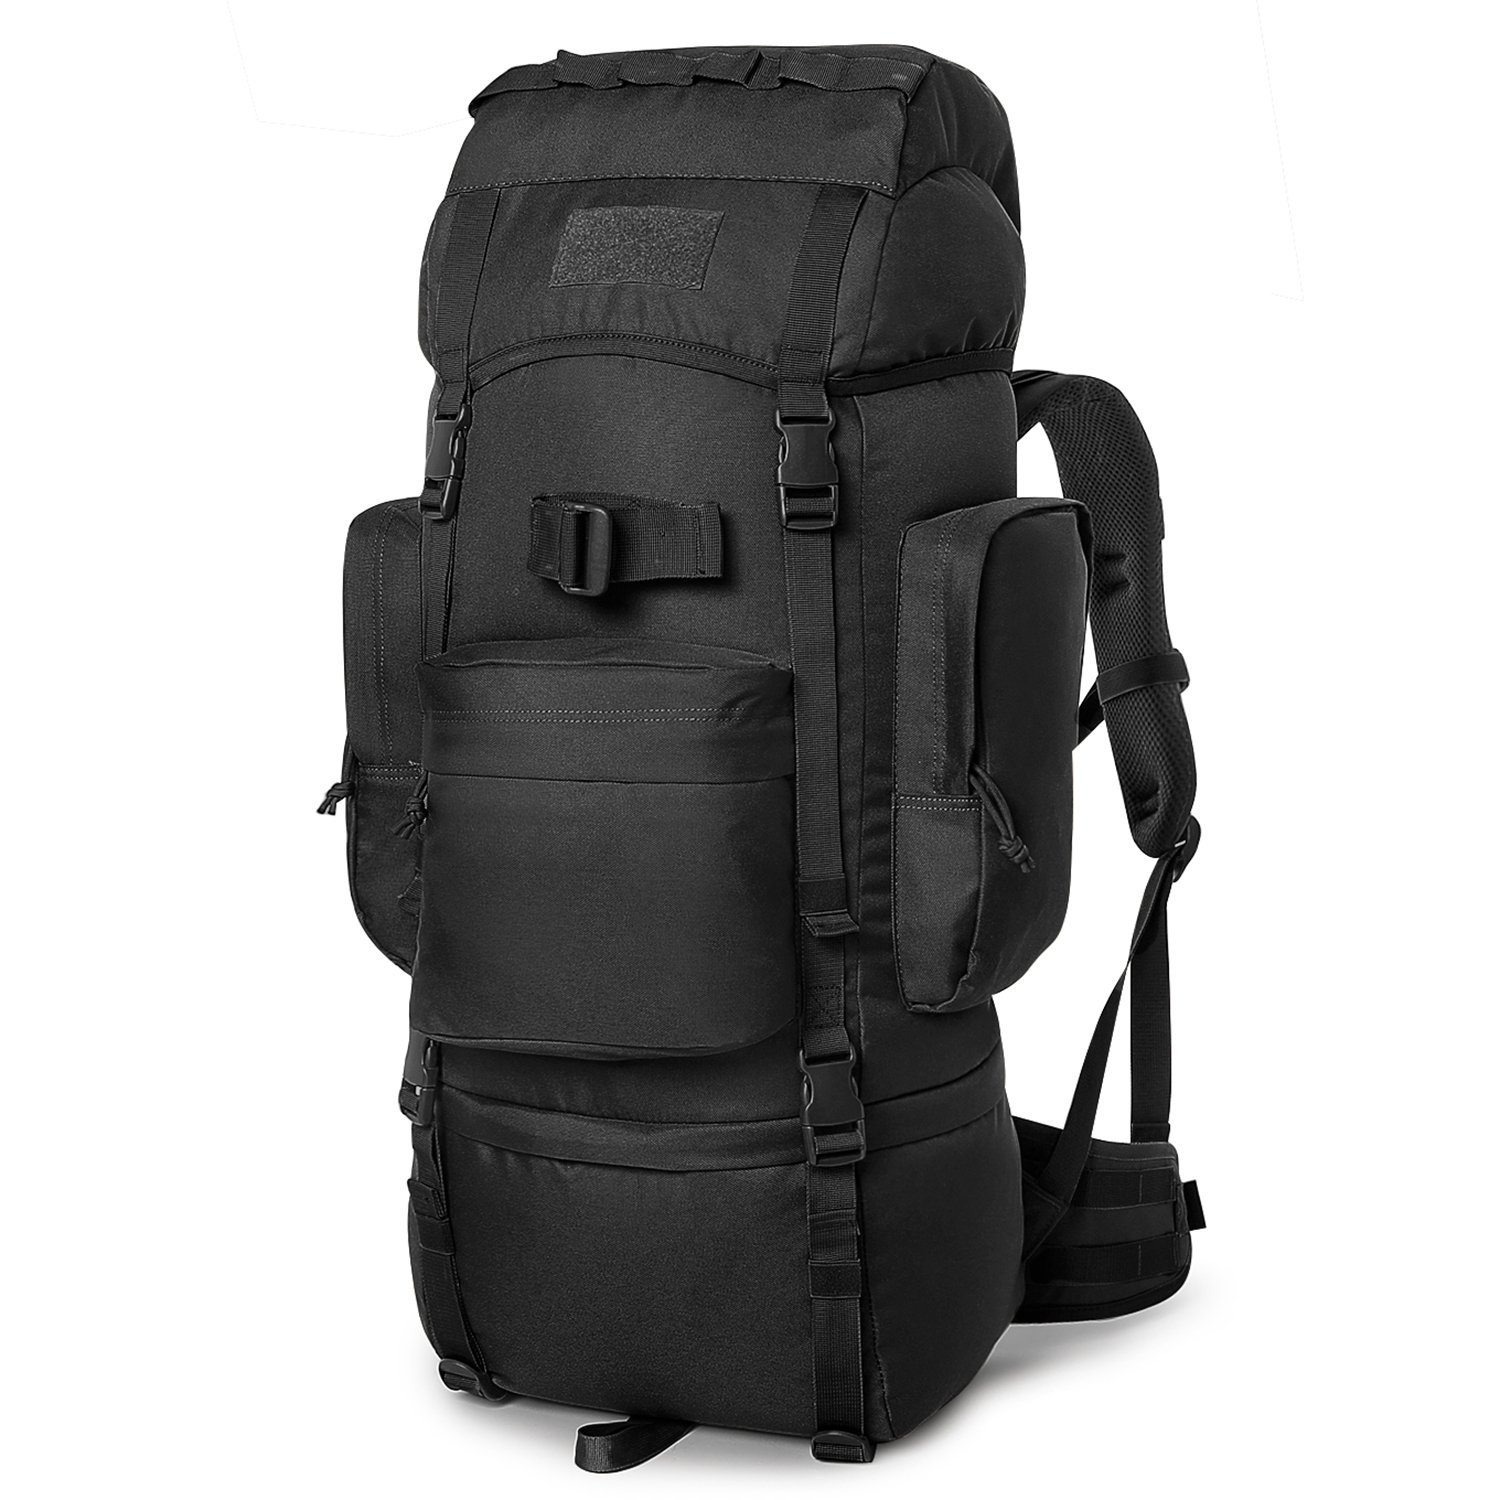 Mardingtop 60L Hiking Backpack Molle Internal Frame Backpacks with Rain Cover for Tactical Military Camping Hiking Trekking Traveling (M6223-Black-60L) by Mardingtop